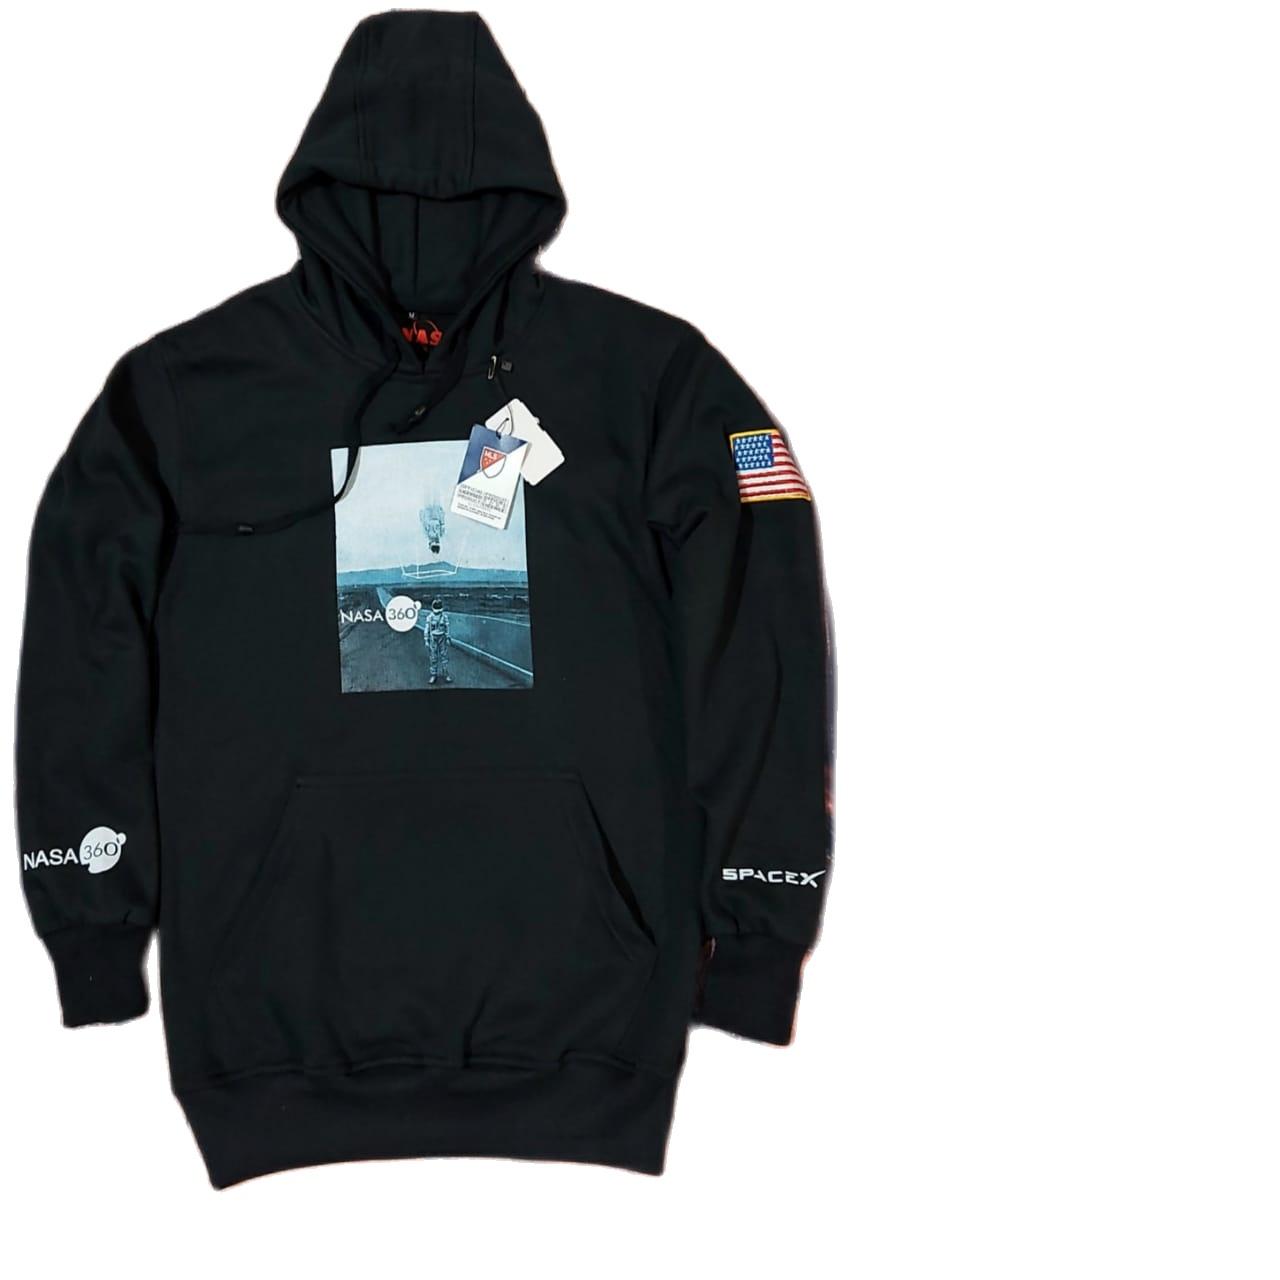 sweater other pria-jaket sweater hoodie pull over nasa spacex360 ( nasa)-sweater hoodie pria -sweater pria original nasa spacex 360